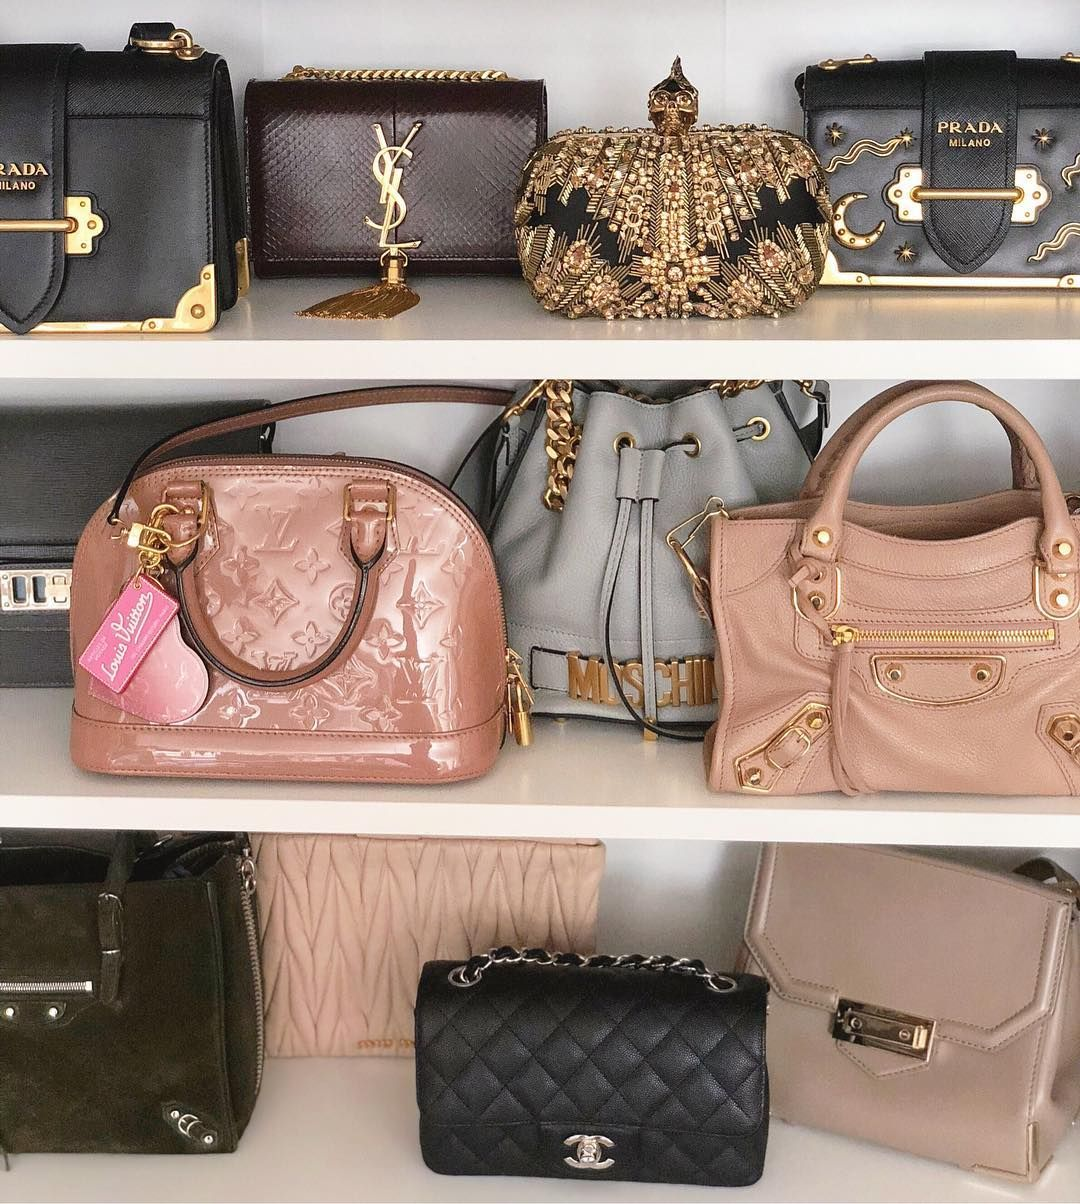 78403a756600 Some of my designer handbag collection: Prada Cahier, YSL Kate snakeskin  monogram clutch, Alexander McQueen embellished skull clutch, Prada  astrology star ...